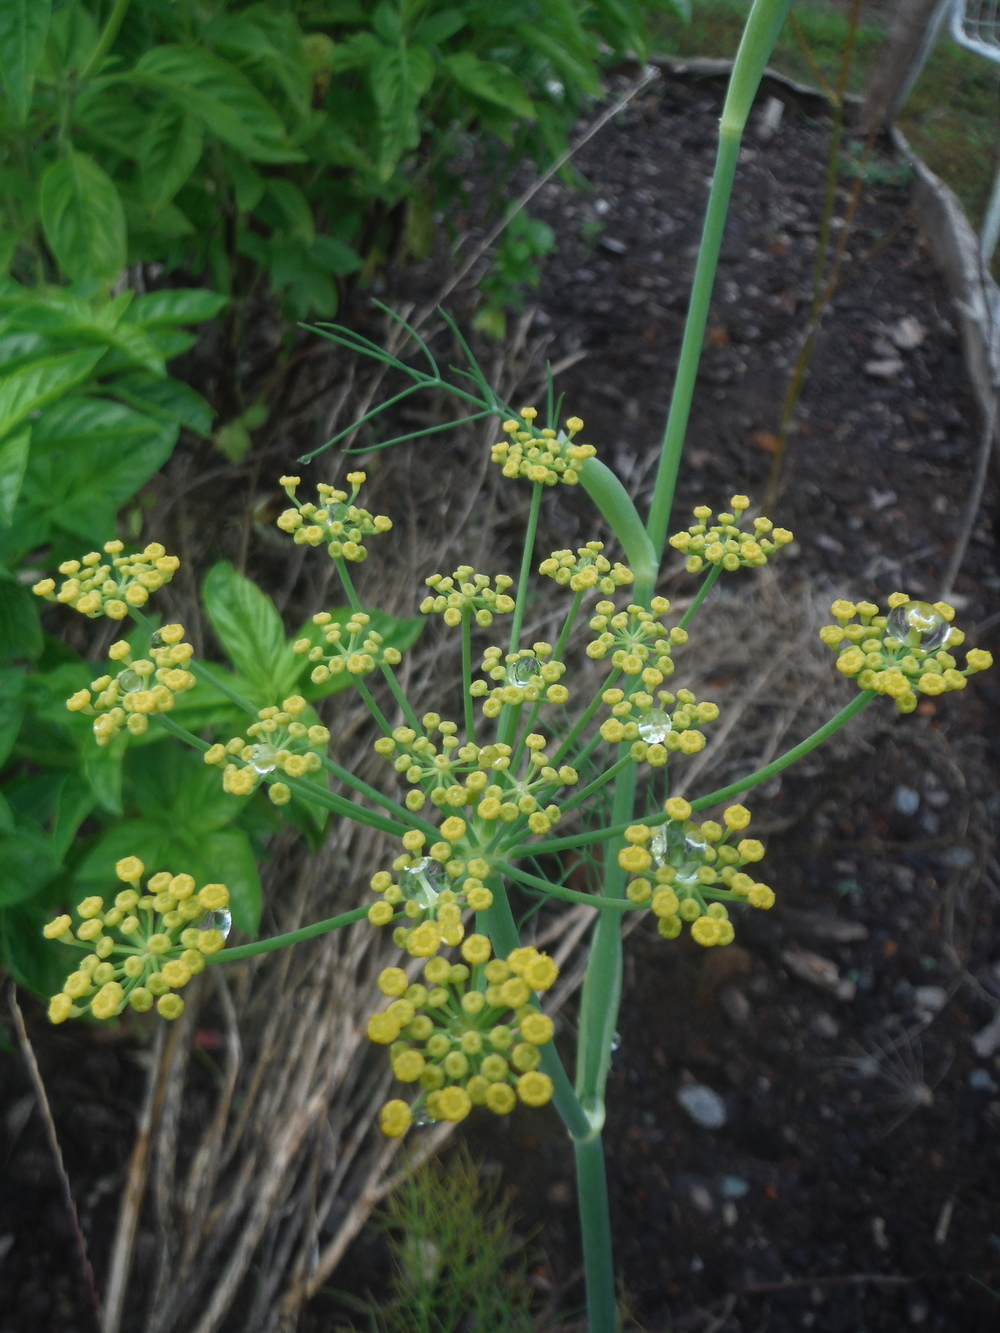 Fennel Flowers were beautiful holding the morning dew as I went to cut materials.